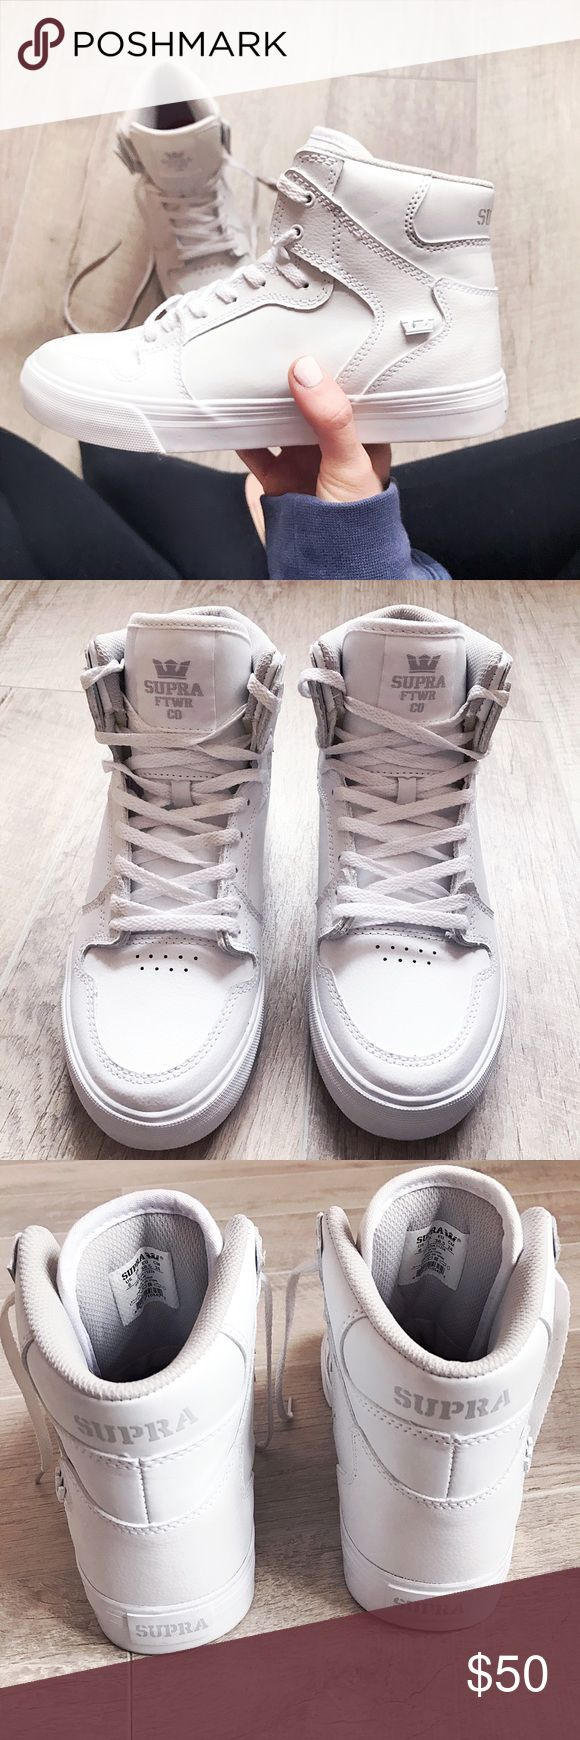 SUPRA High tops from Zumiez✔️ Street style savvy!!✔️white leather SUPRA FTWR CO High tops! Red designer insoles✔️ red designer bottom soles✔️lace up front✔️1' leather bottom sole✔️sneaker height 5 1/2'. These are a kids US 6. Women's 7.5. Worn for a split second look amazing! Right shoelace looks as though it might be a bit discolored! No biggie😉 can hardly see unless you point it out! Offers are welcome✌🏼no trades thank you! Supra Shoes Sneakers